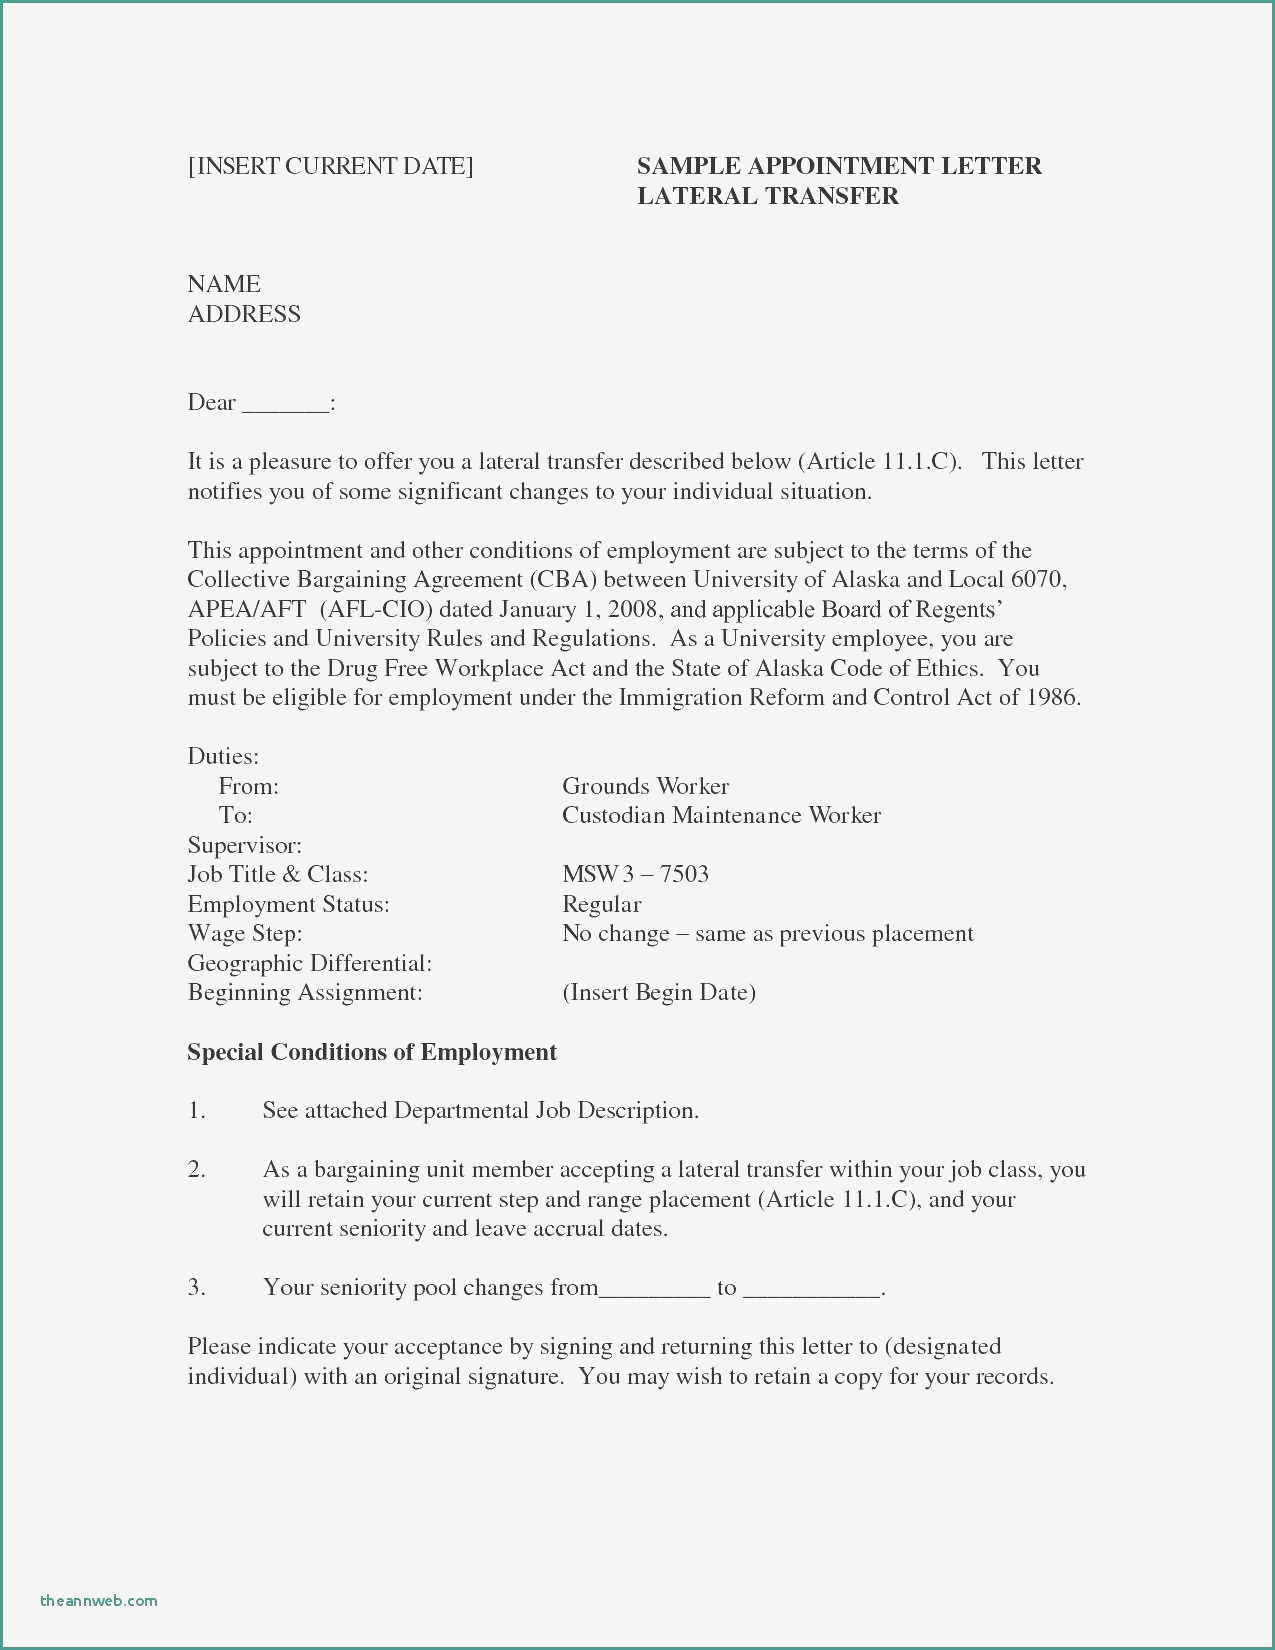 College Transfer Resume - College Professor Resume Sample